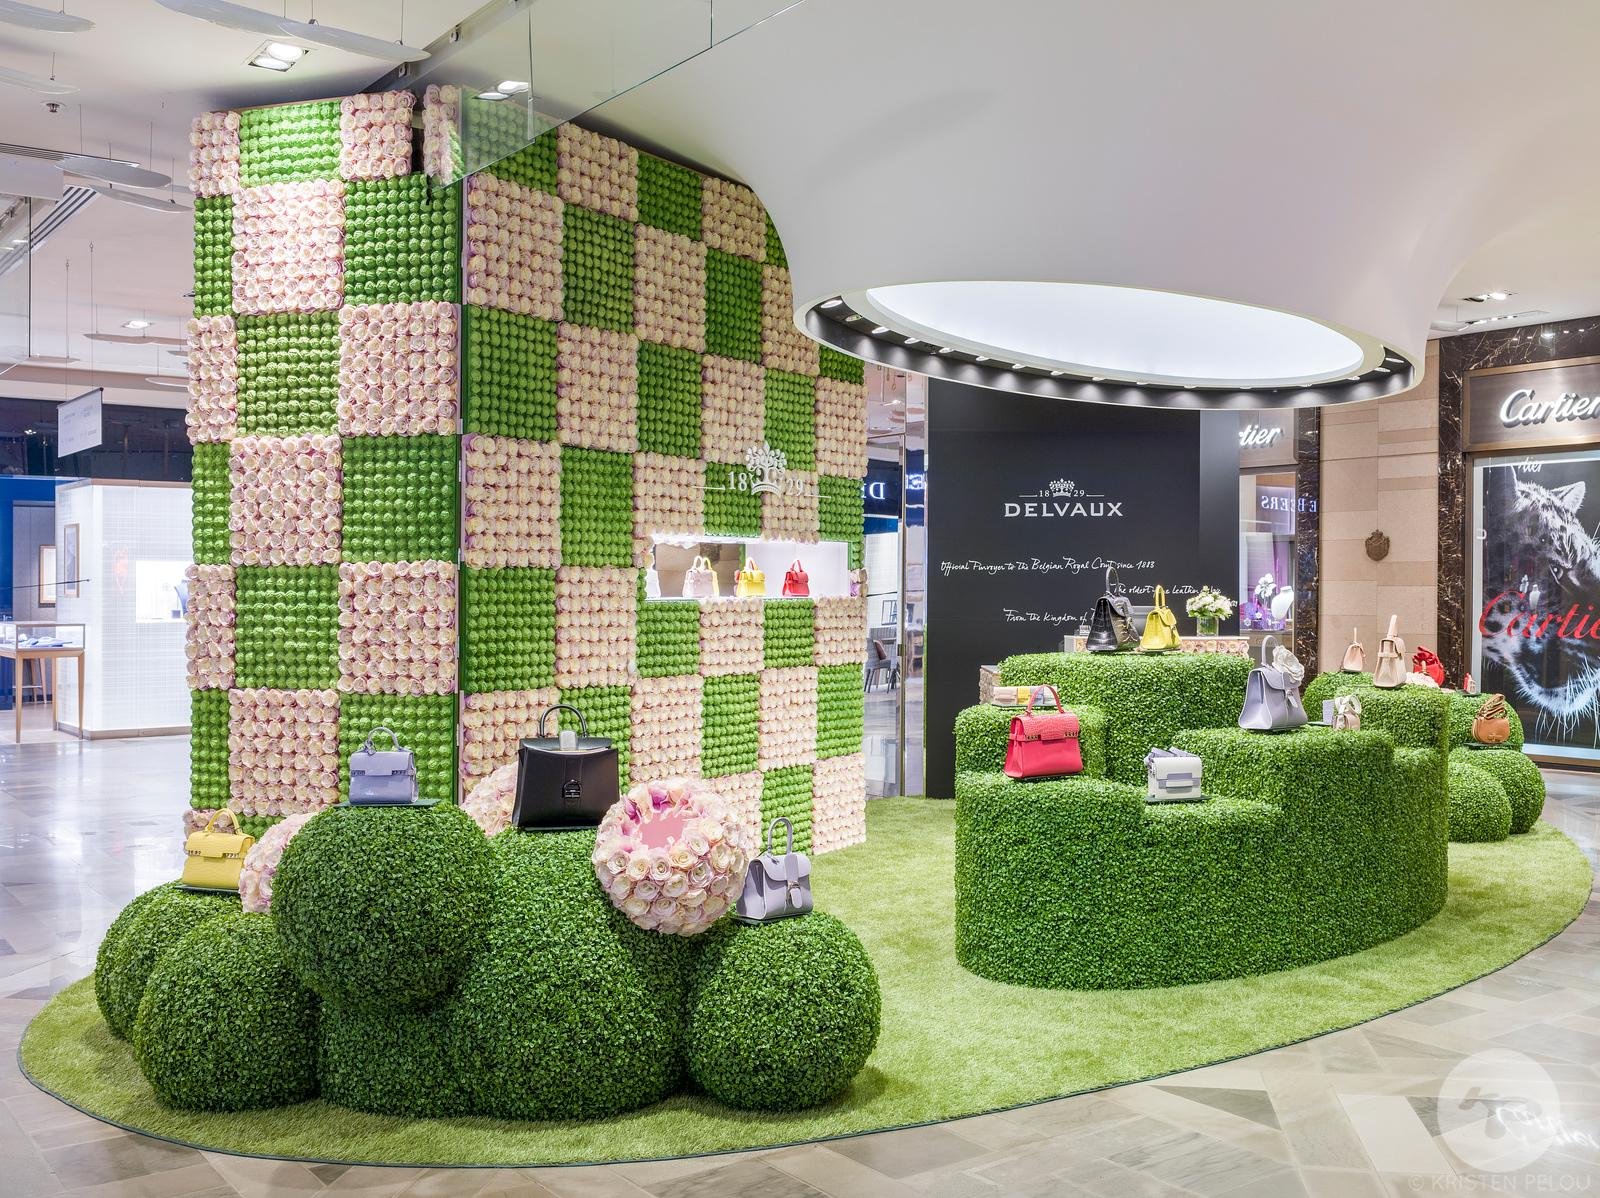 Pop up store by Delvaux, Galeries Lafayette, Paris, France.